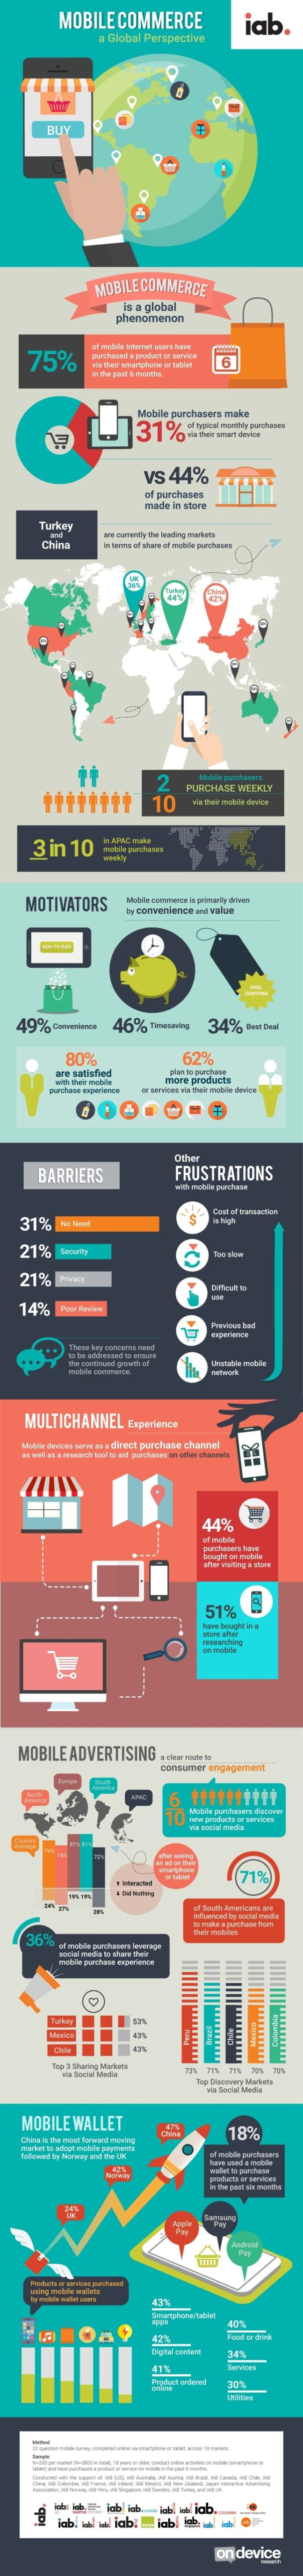 Mobile Commerce: A Global Perspective infographic